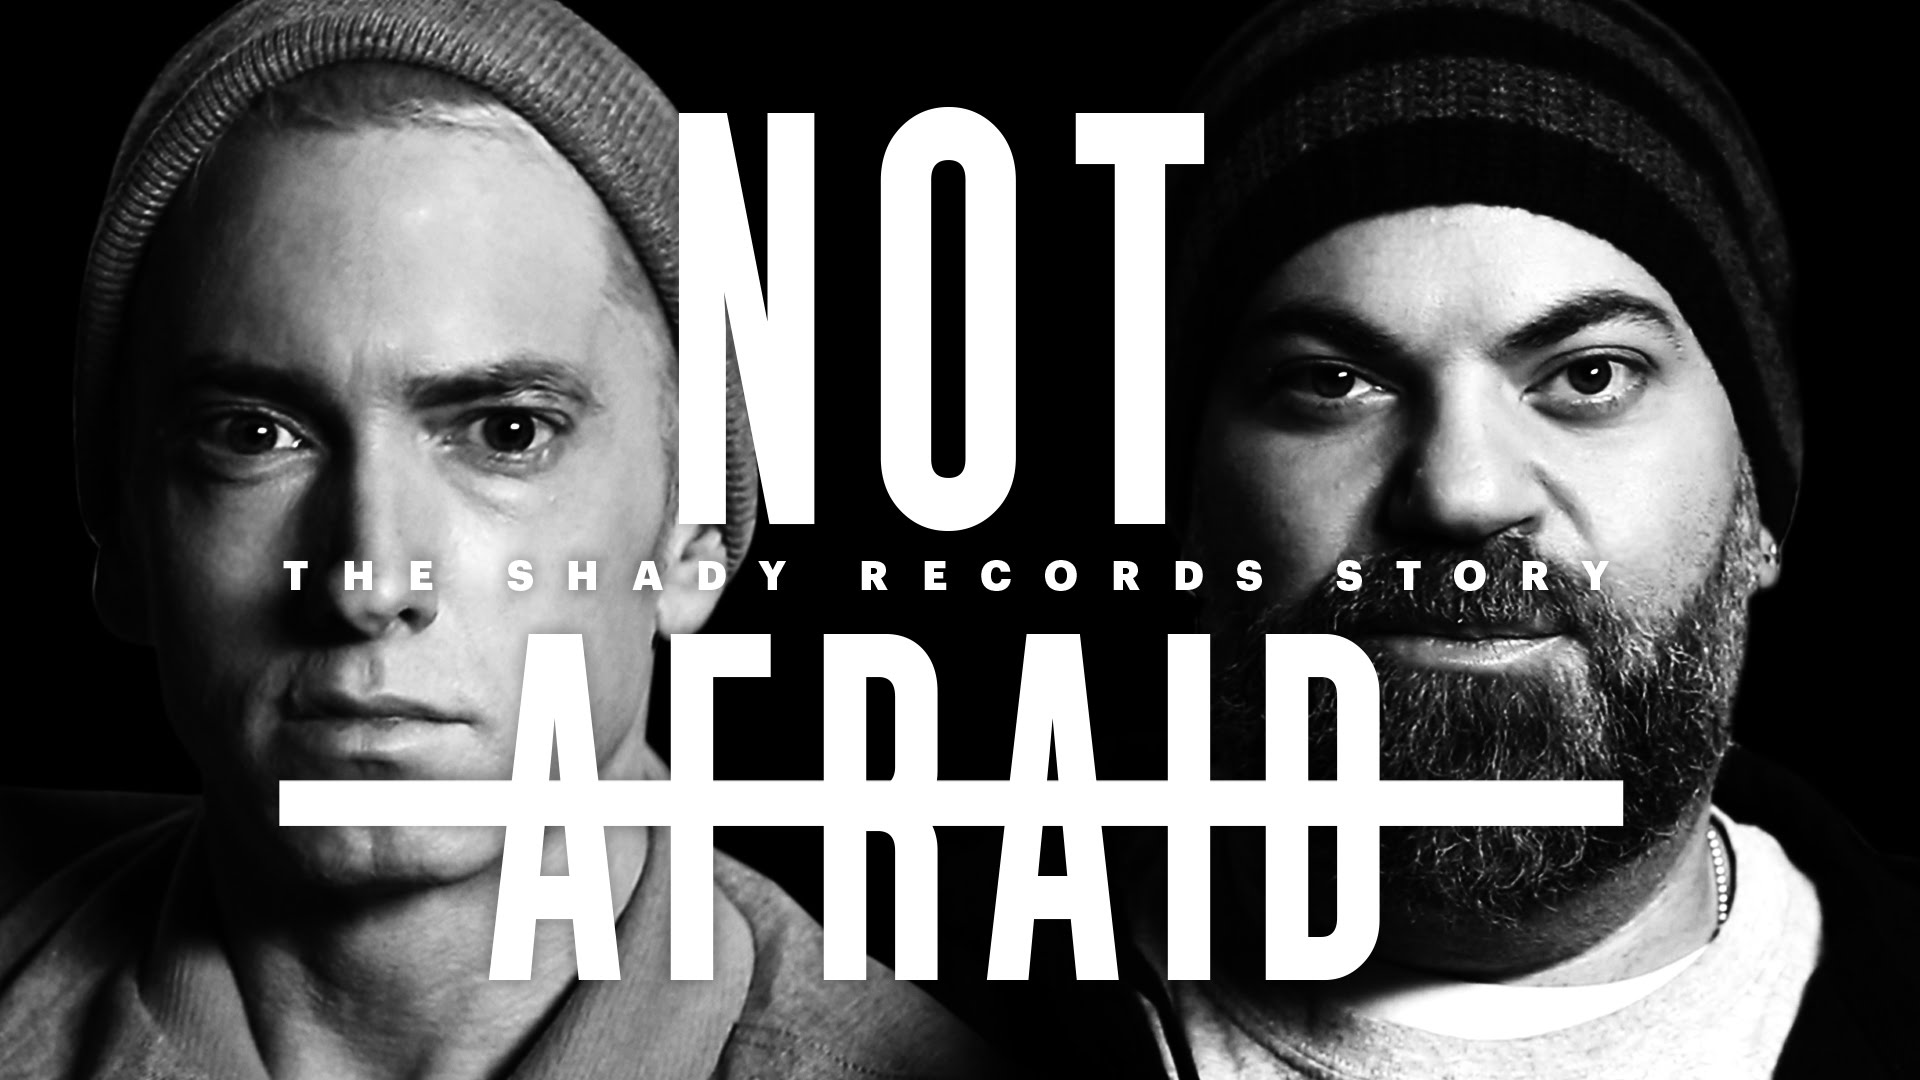 eminem not afraid documentario, eminem not afraid traduzione, eminem shady records, eminem complex,